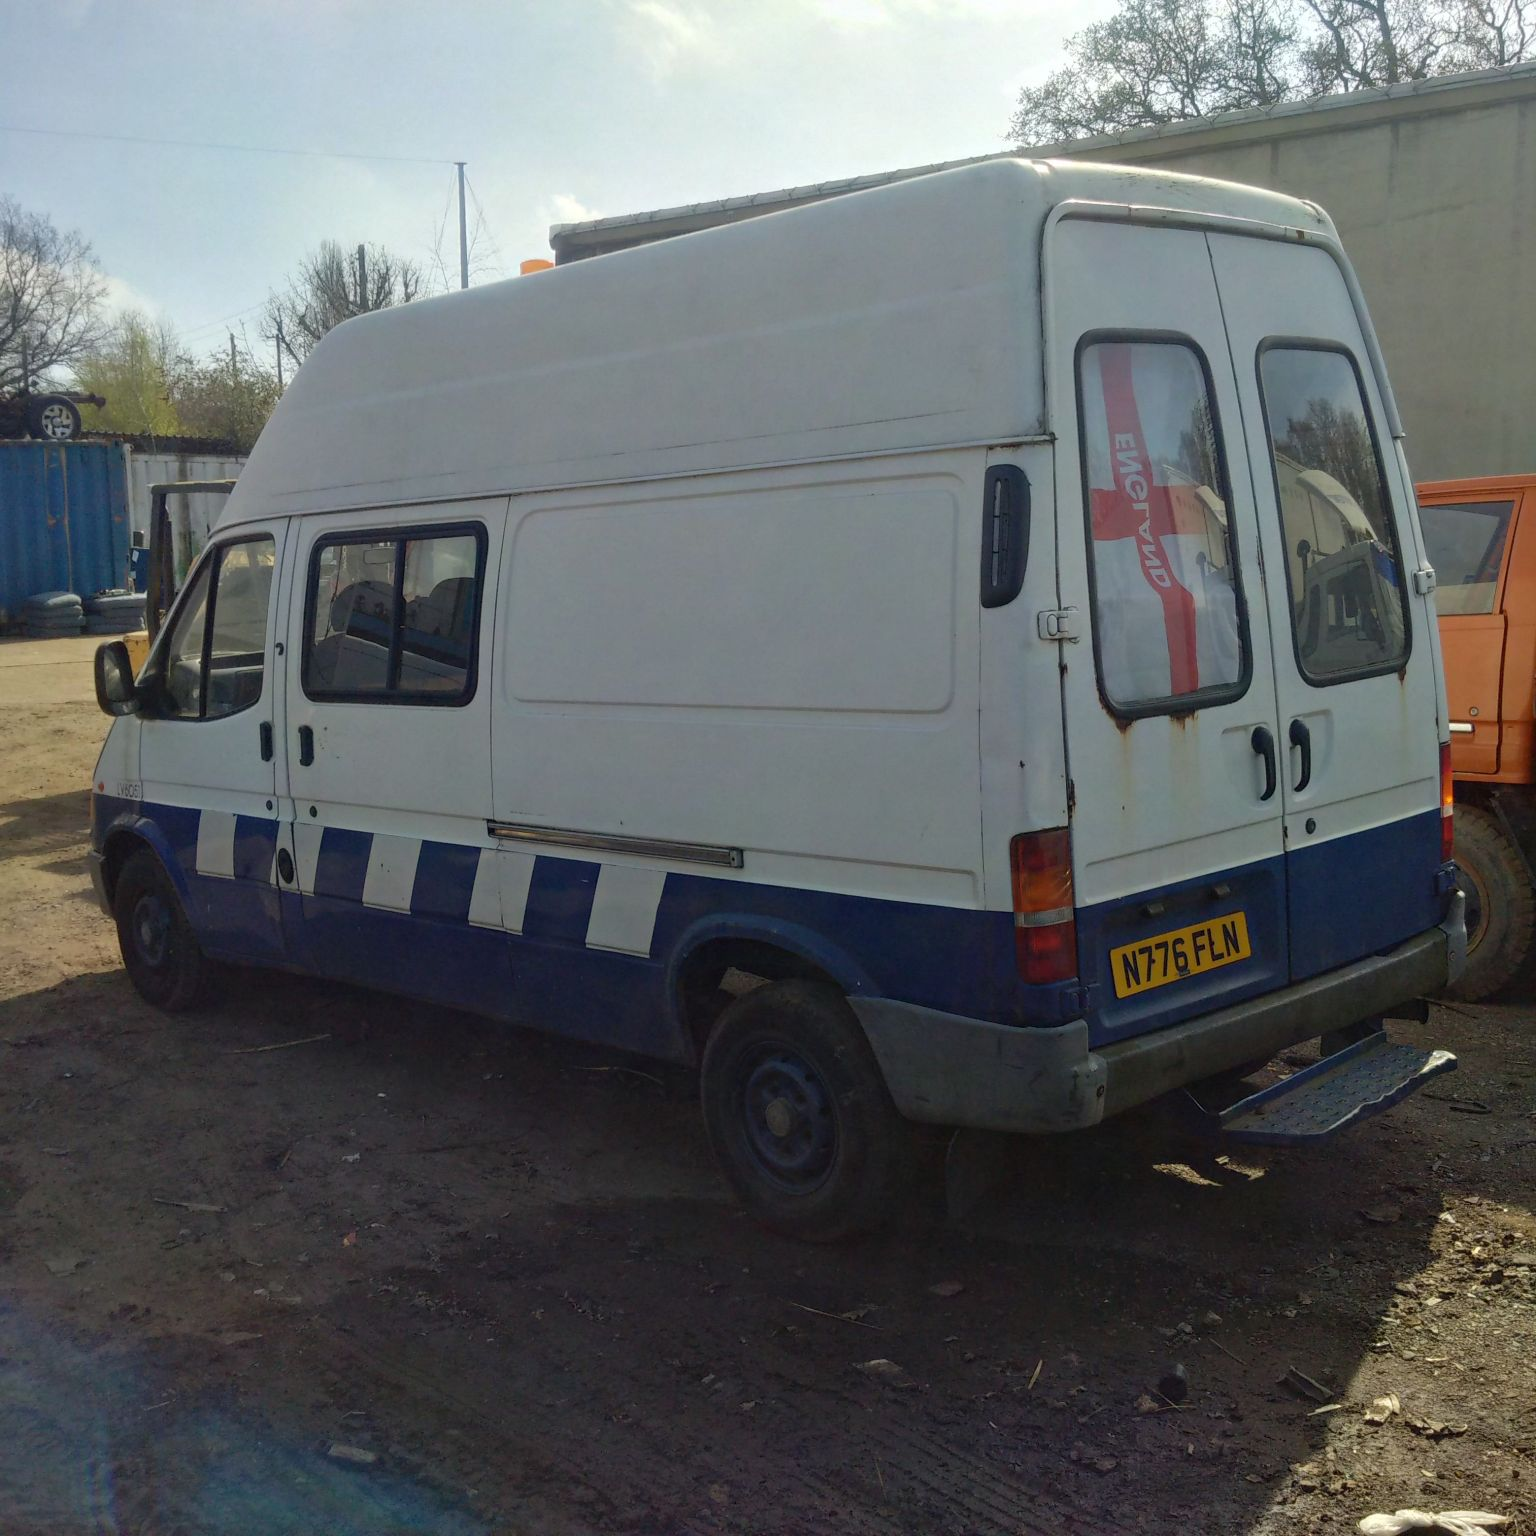 Swiss Vans Large Uk Ford: Ford Transit 100 2.5 Diesel Long Wheel Base Van.